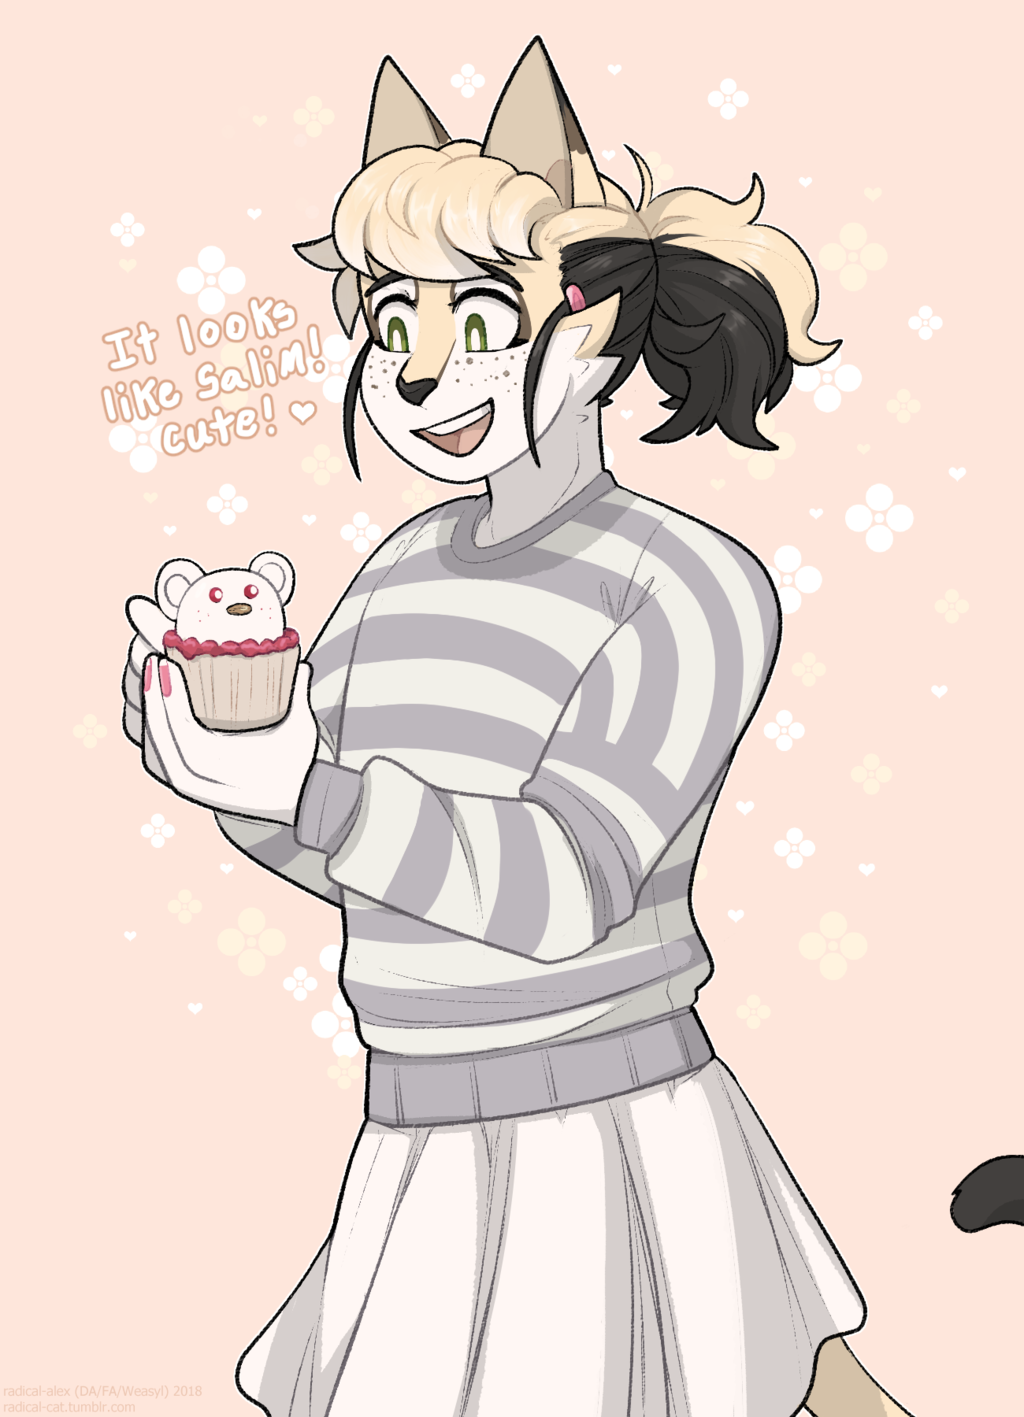 Most recent image: happy bday u funky mouse lovin girl